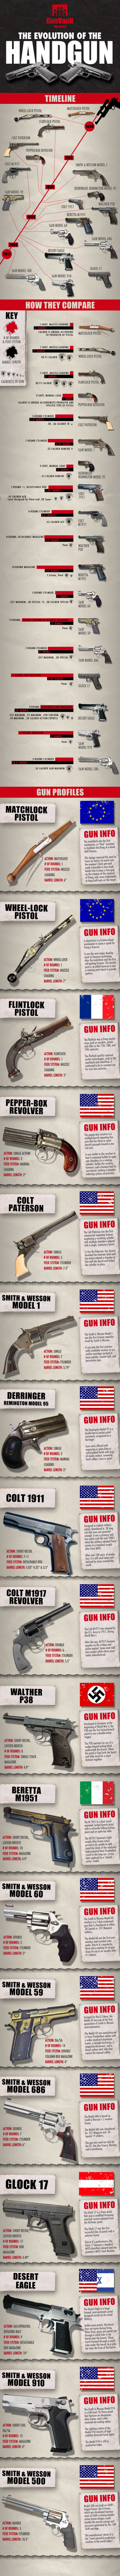 The Evolution of the Handgun infographic